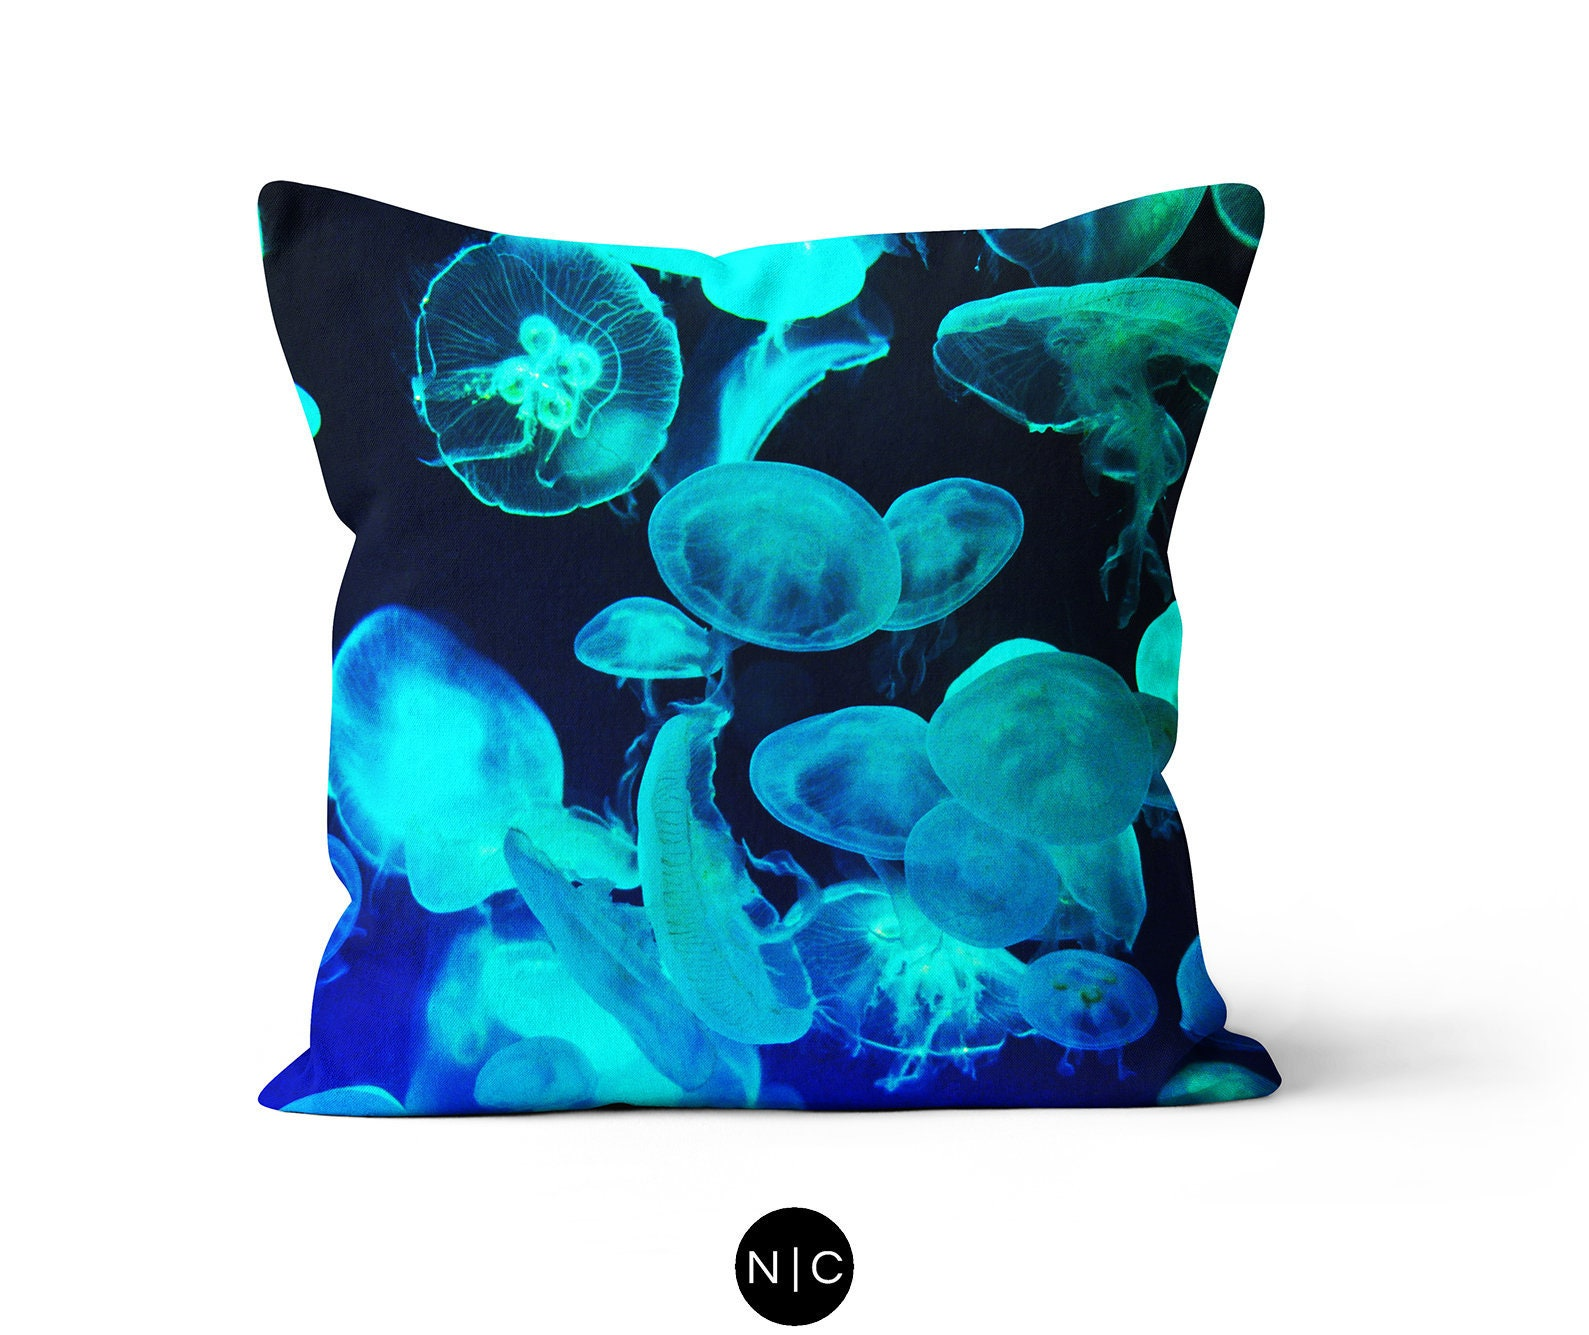 Canadian Inspired Home Decor Canada Pillow Via Etsy: Blue Moon Jellyfish Throw Pillow Nautical Style Home Decor